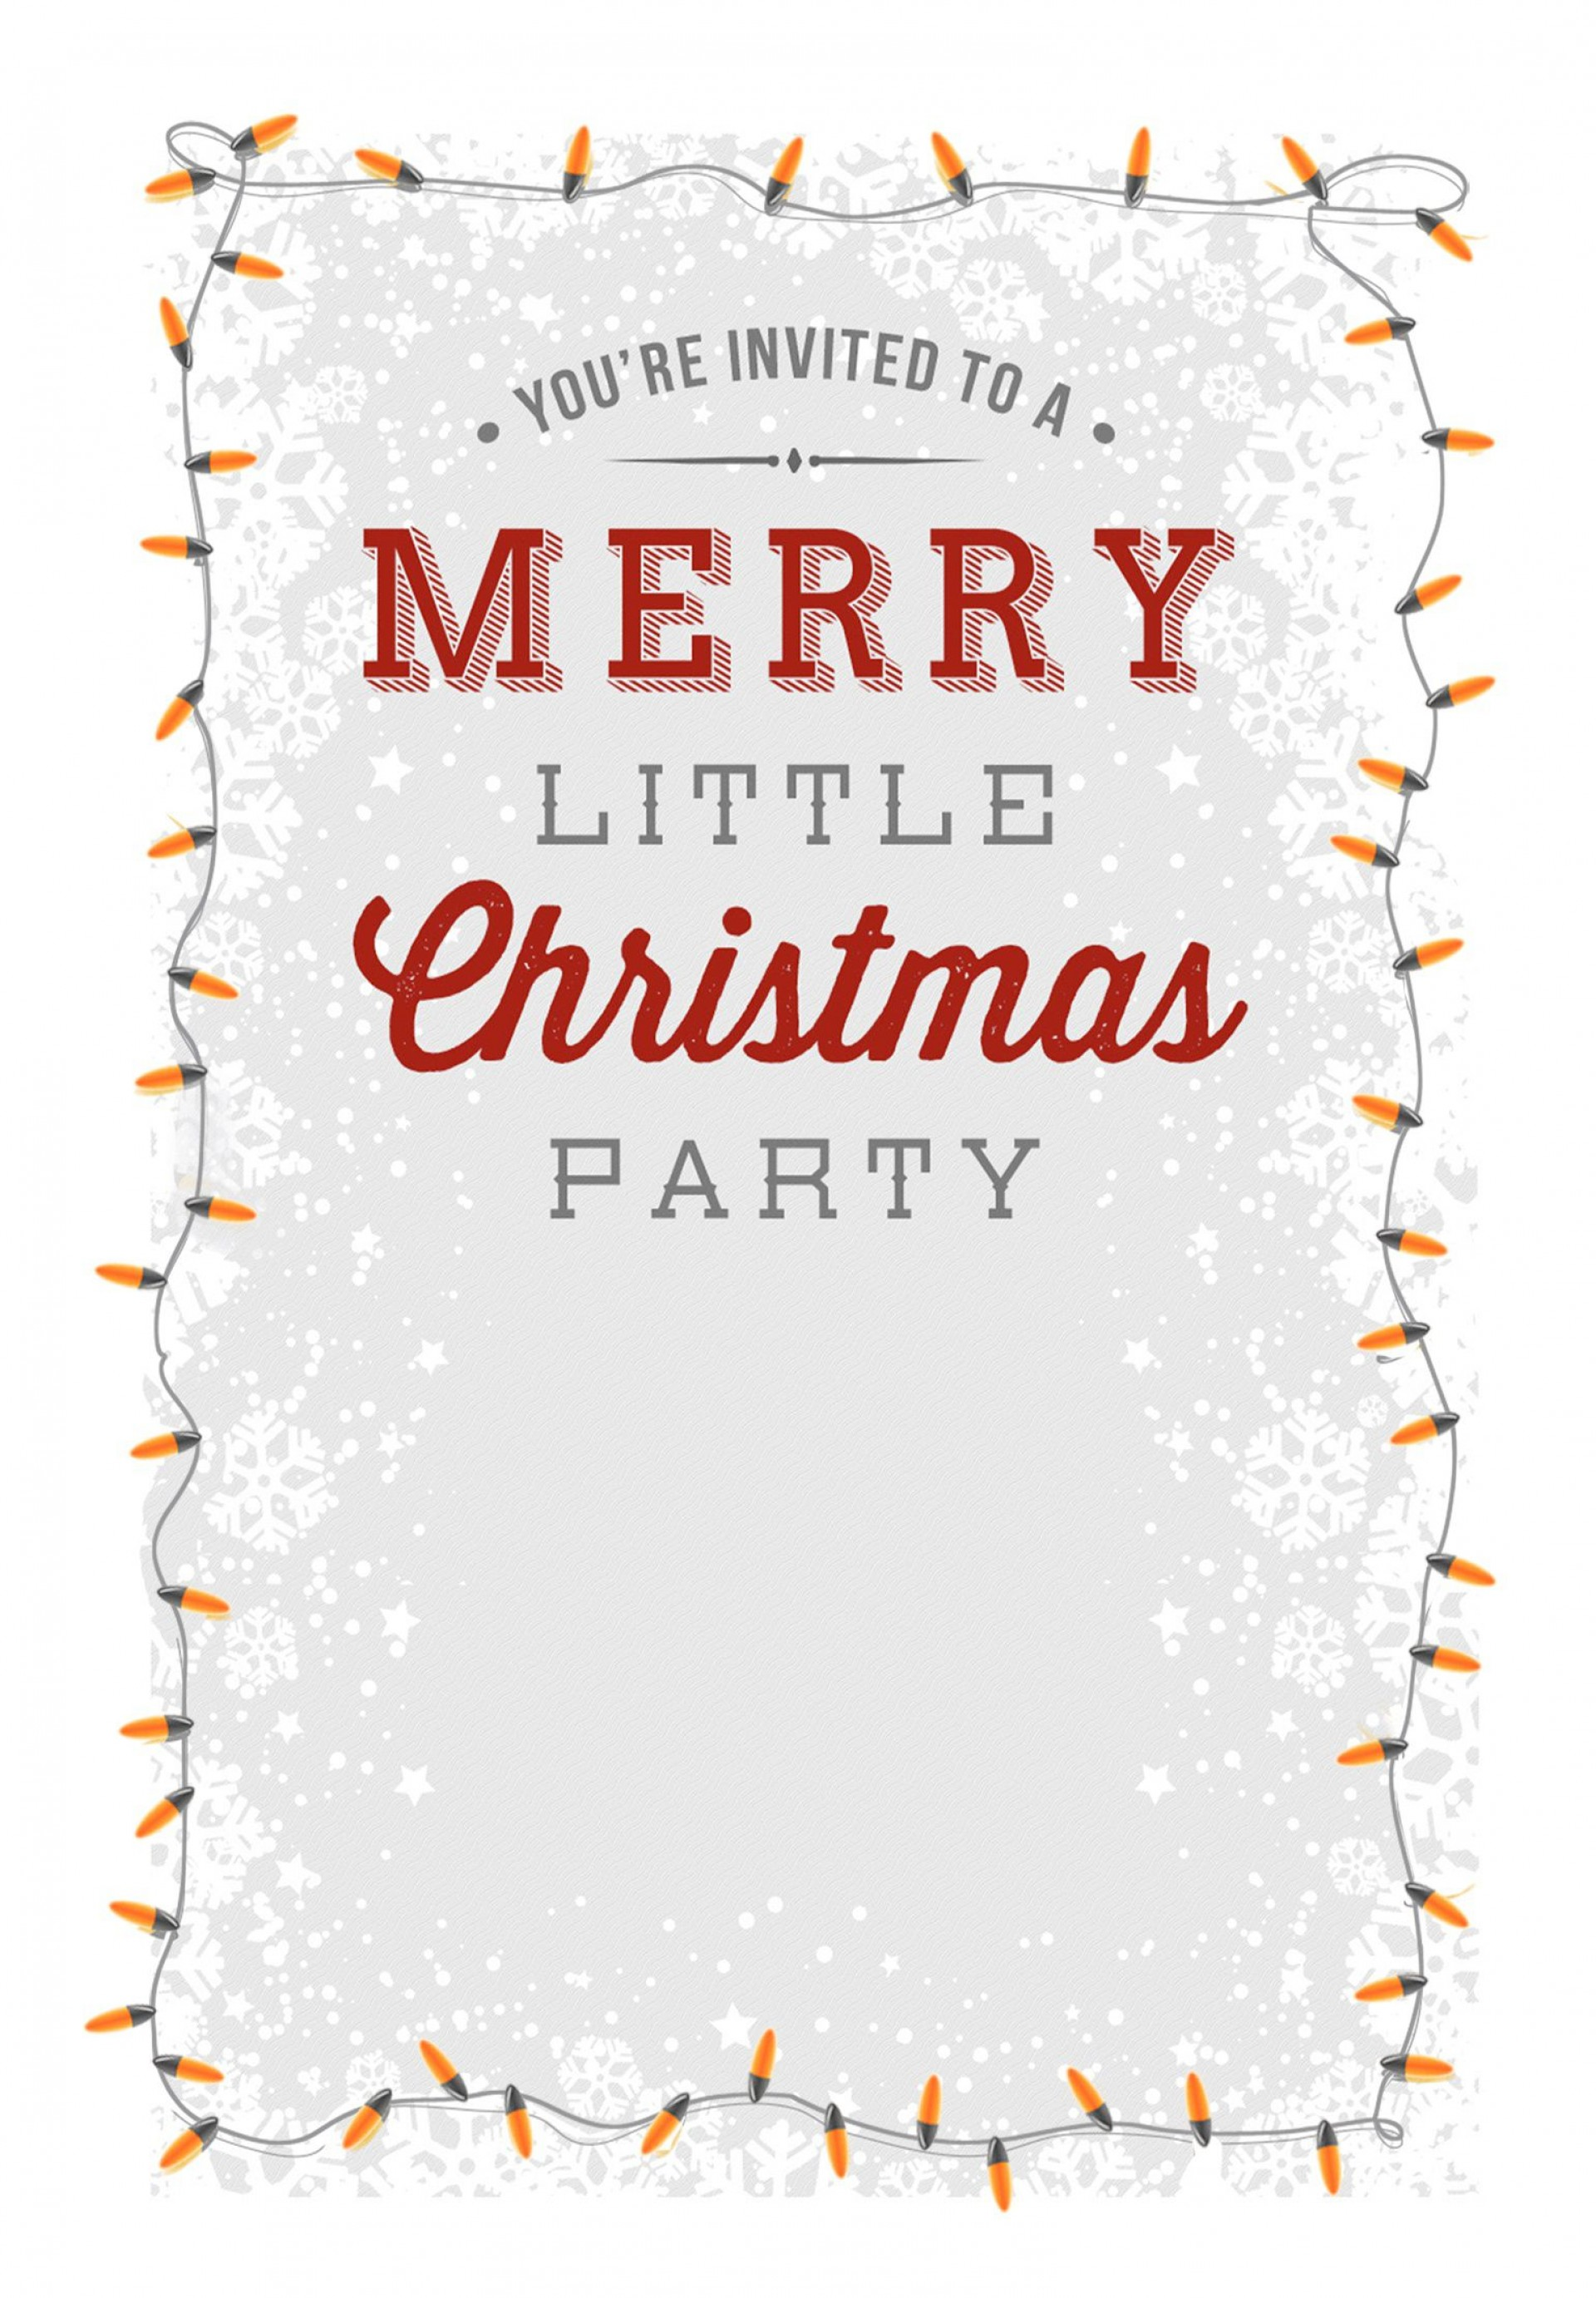 004 Outstanding Free Holiday Invite Template Picture  Templates Party Ticket For Email1920